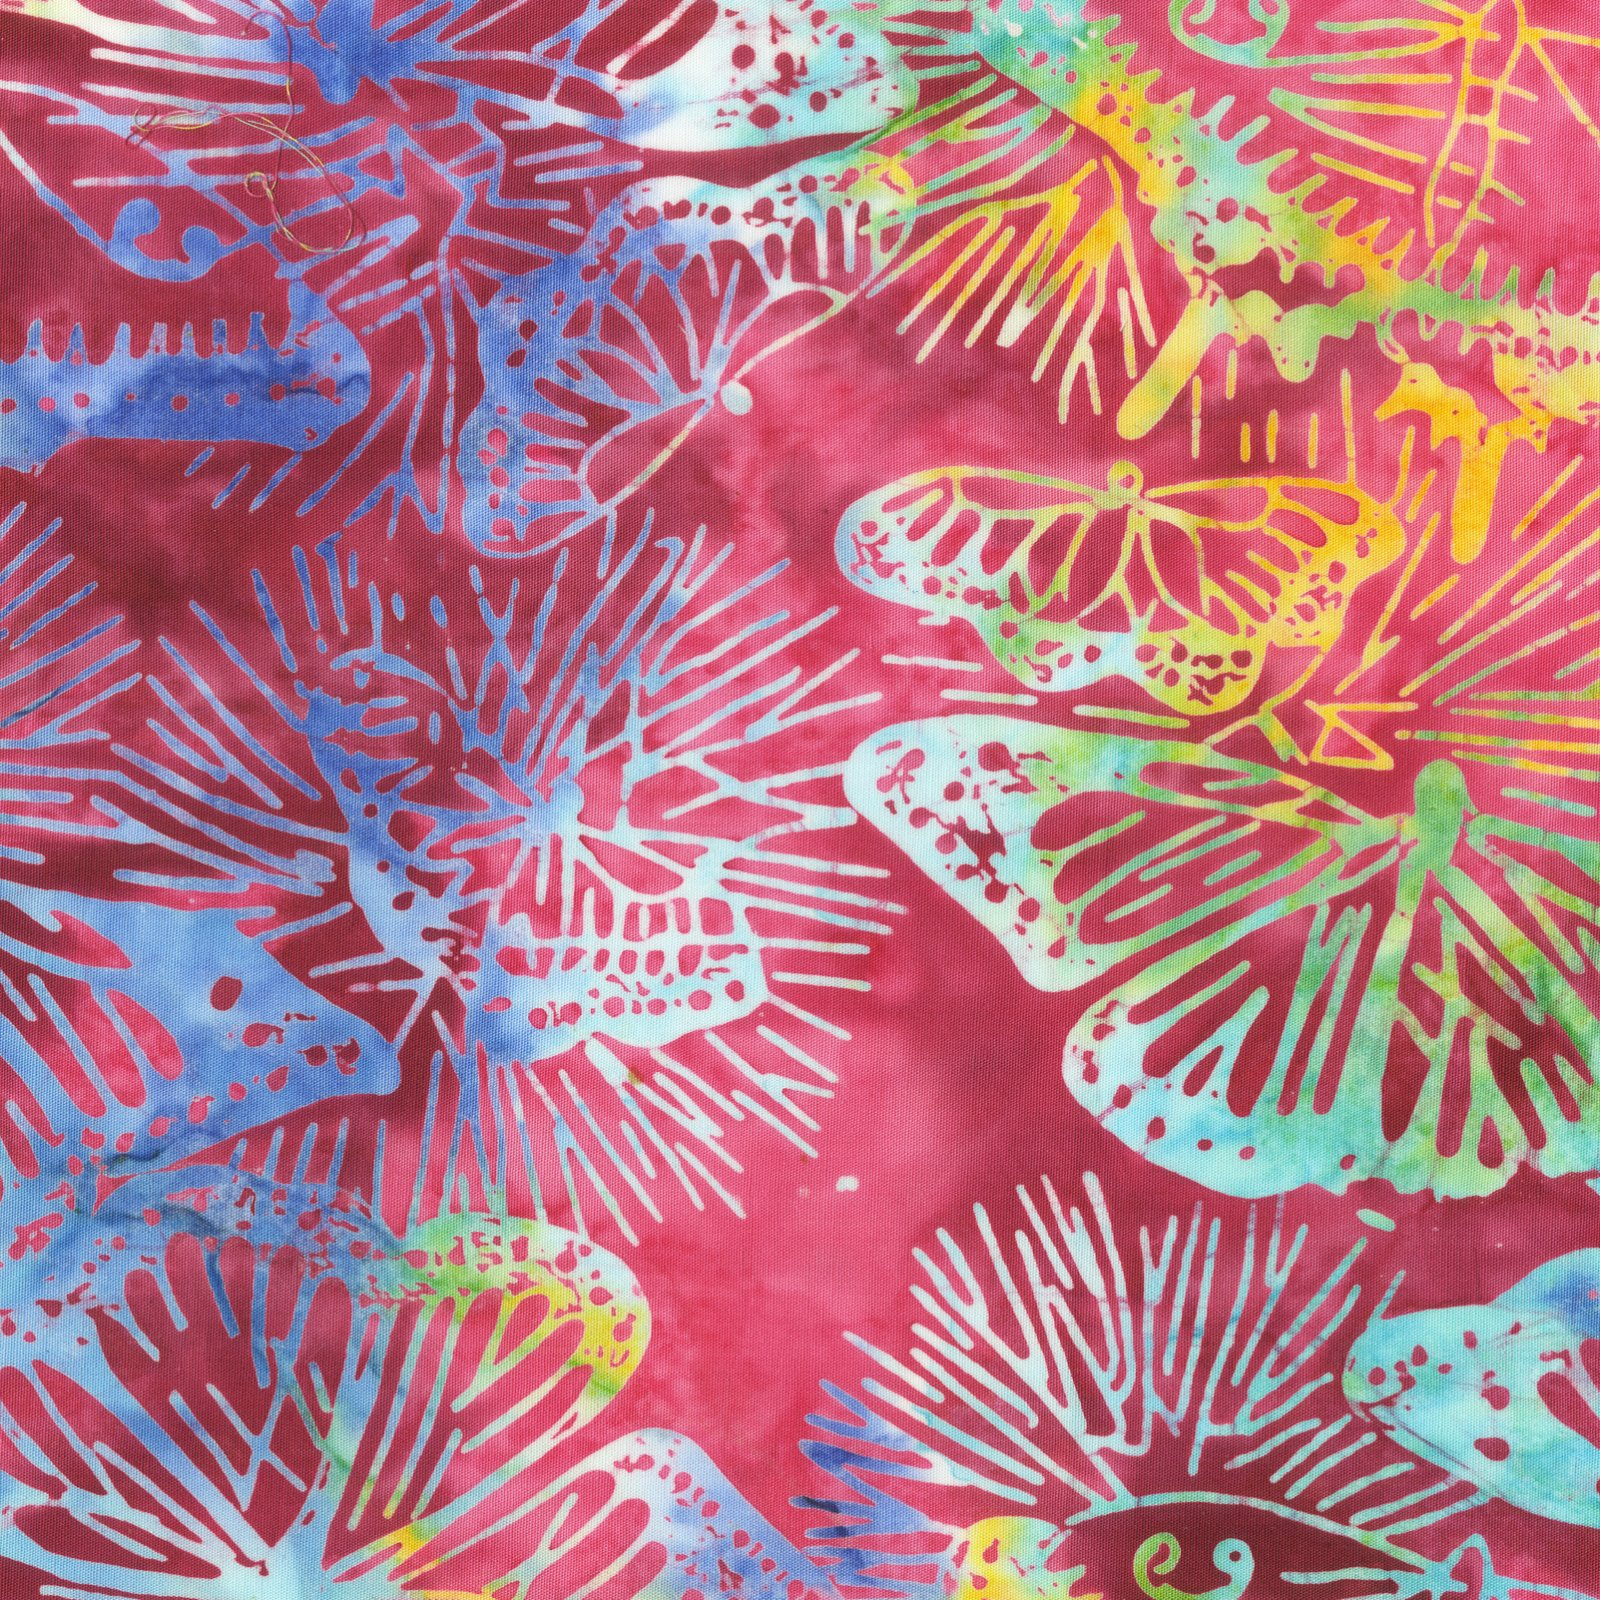 701Q-1 Island Home by Natalie Barnes of Beyond the Reef for Anthology Fabrics